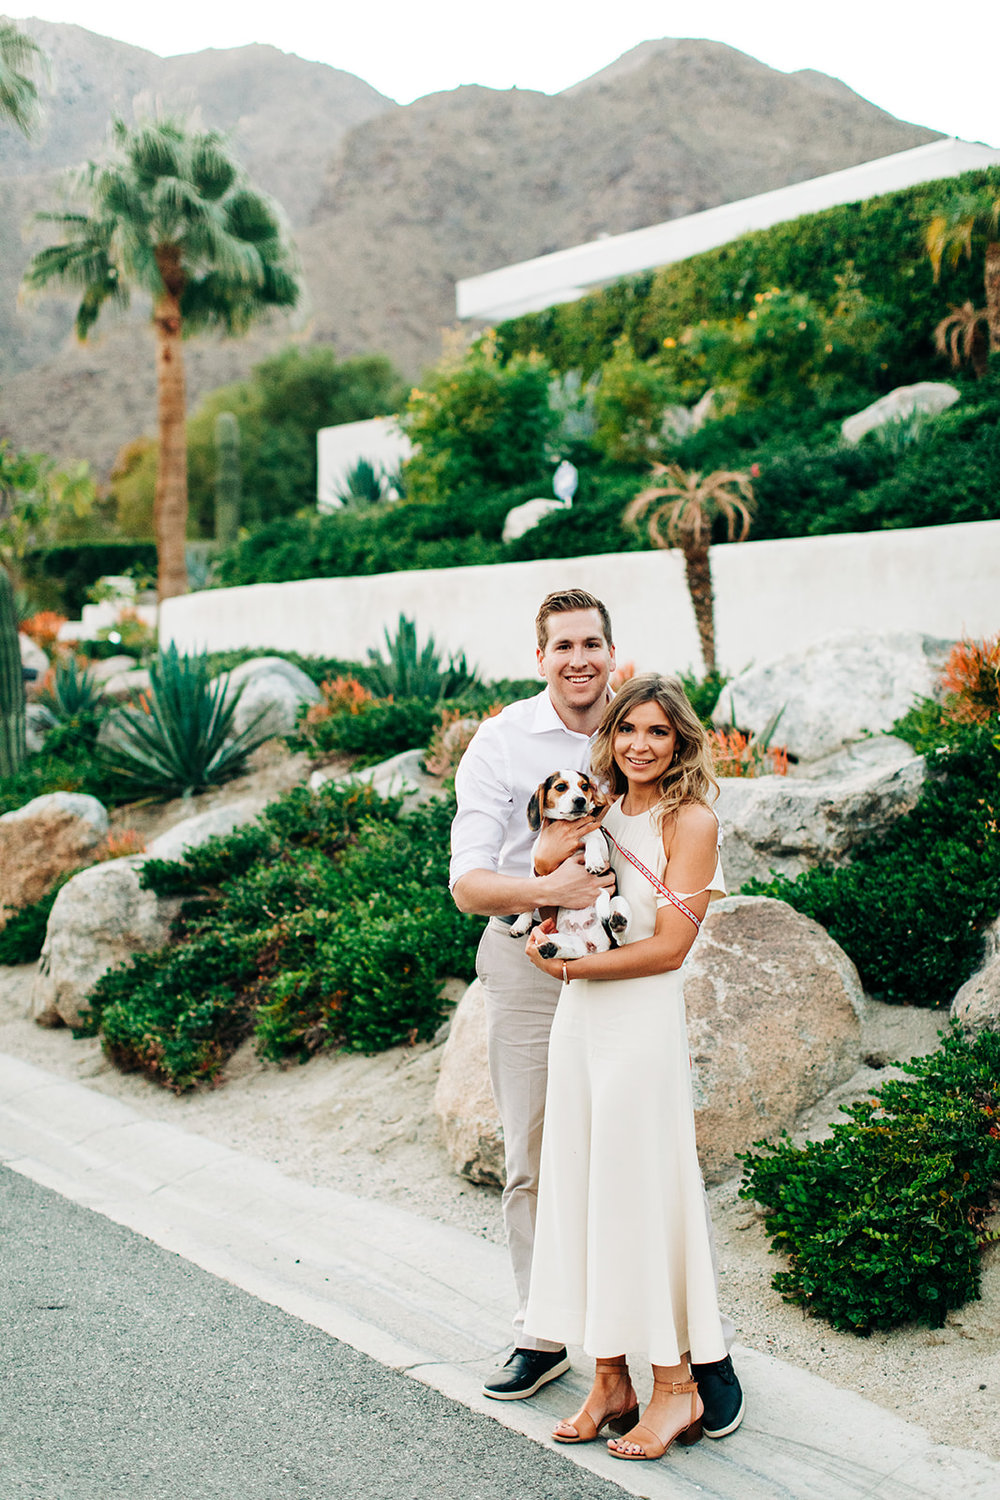 Paulina-Drew_Palm-Springs-Engagement-Photos_Clarisse-Rae_Southern-California-Wedding-Photographer-62